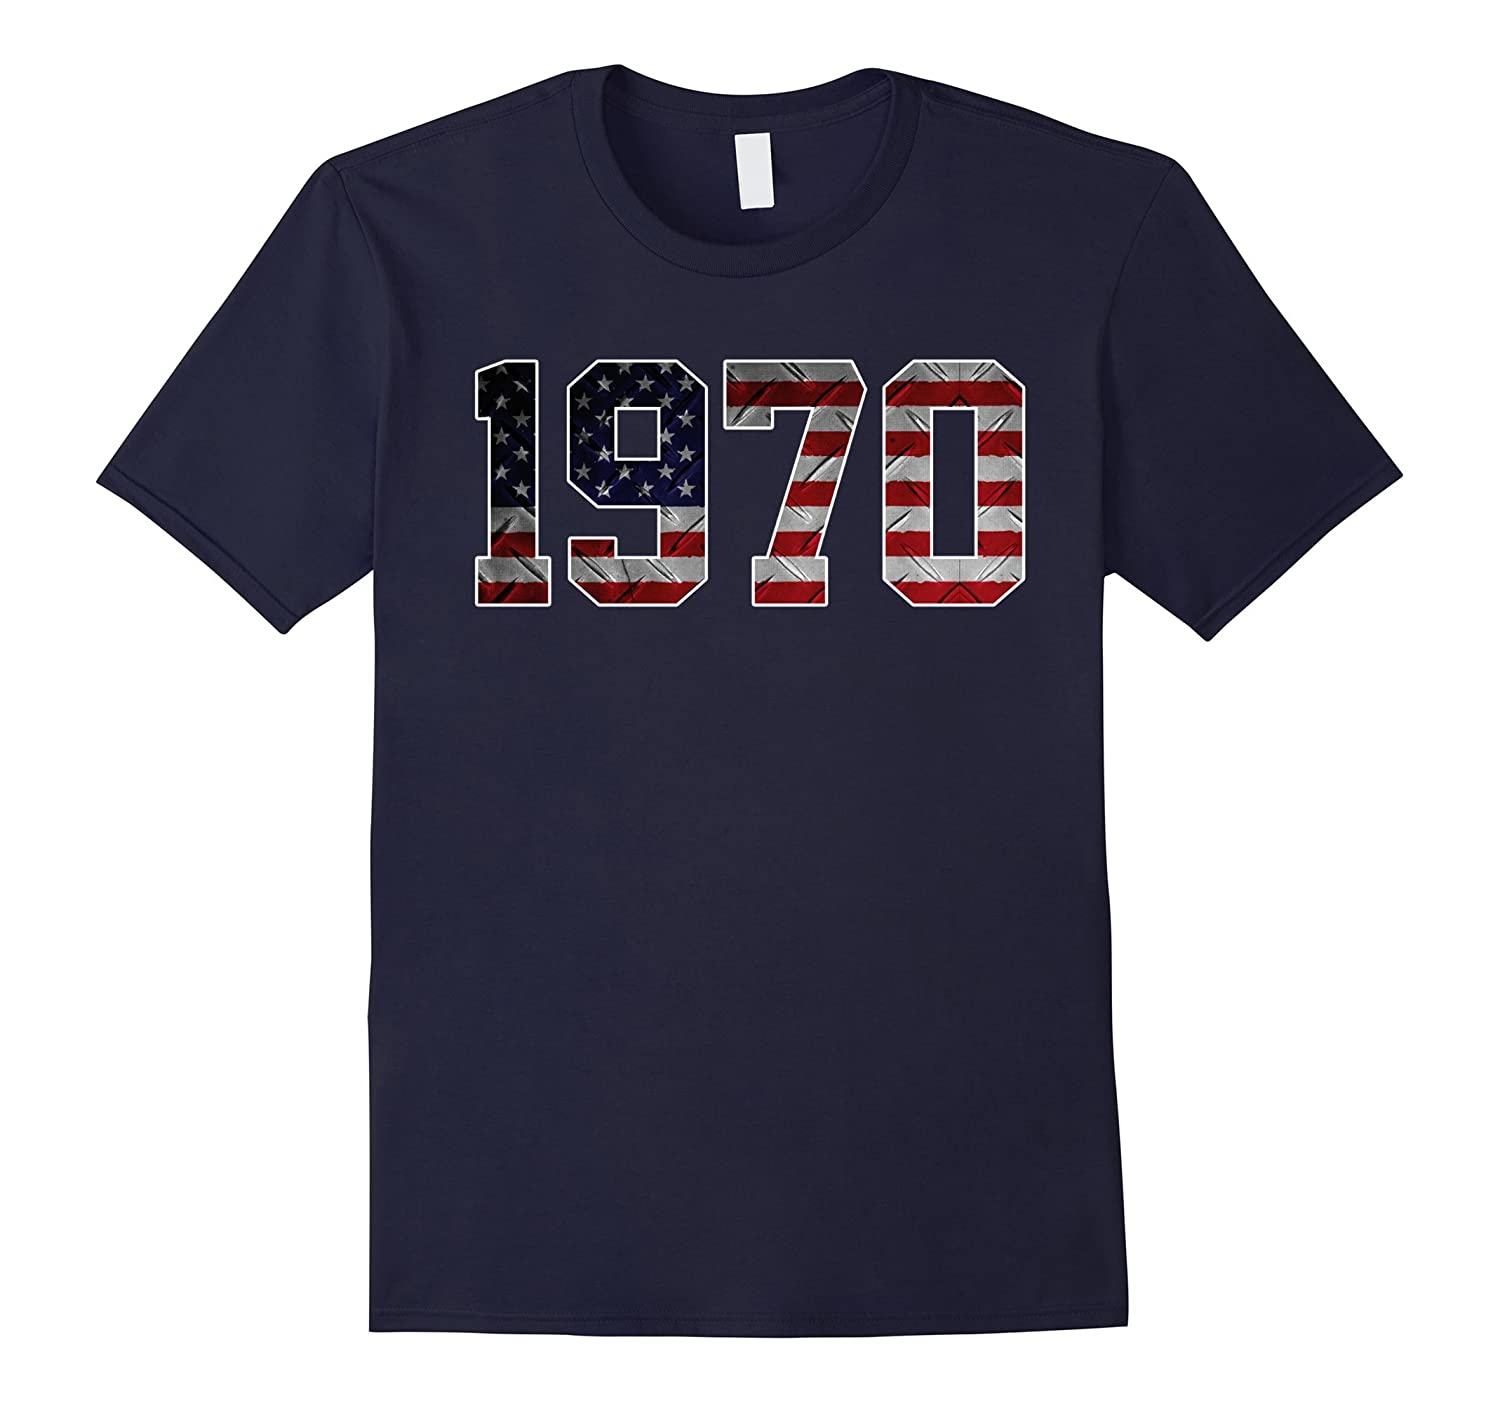 1970 American Flag T-shirt 47th Birthday Gifts-PL